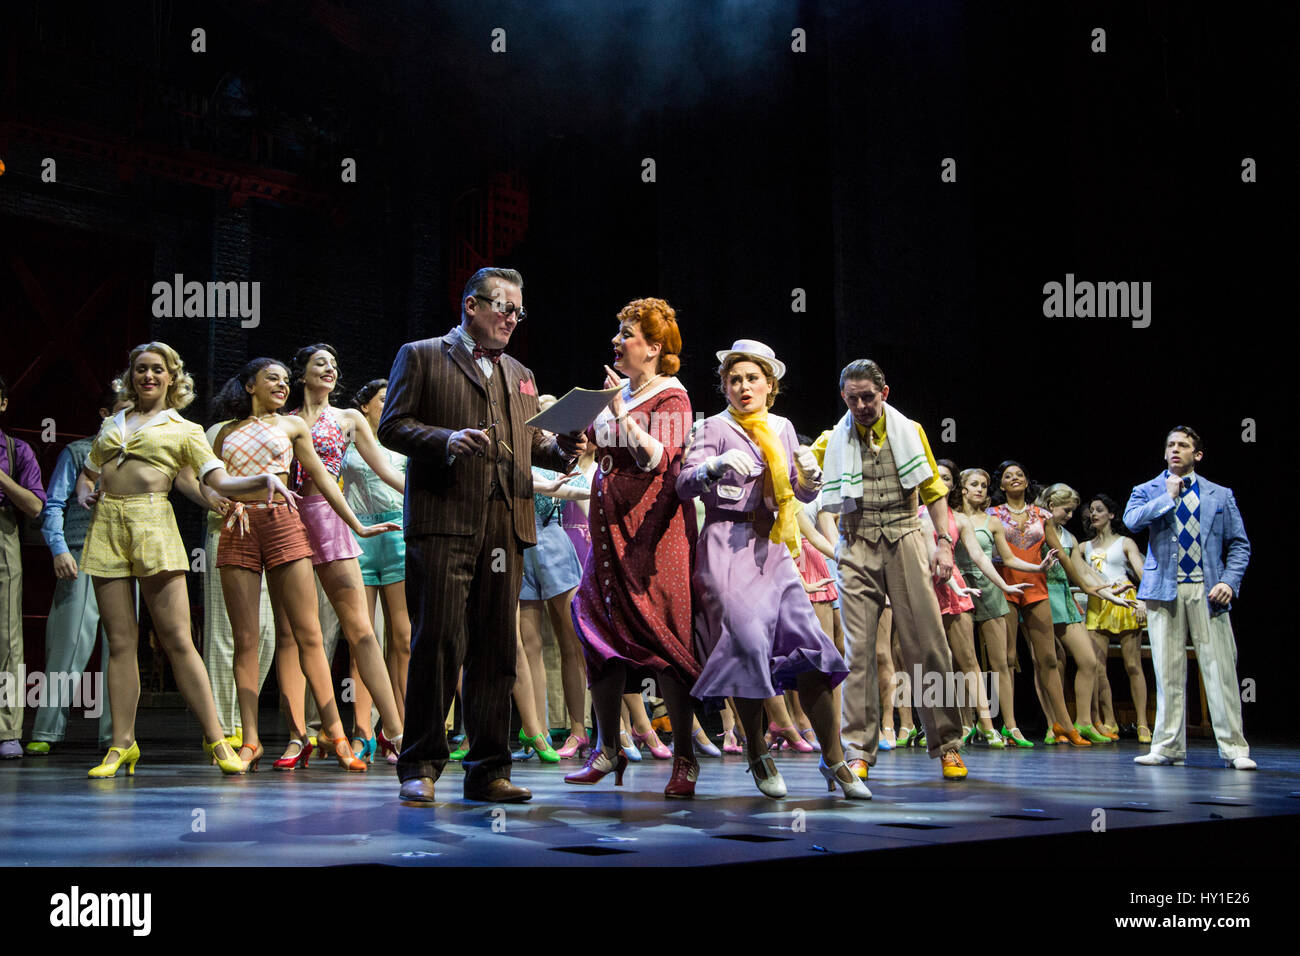 Photocall for the musical 42nd Street at the Theatre Royal Drury Lane. The musical features a score by Harry Warren - Stock Image